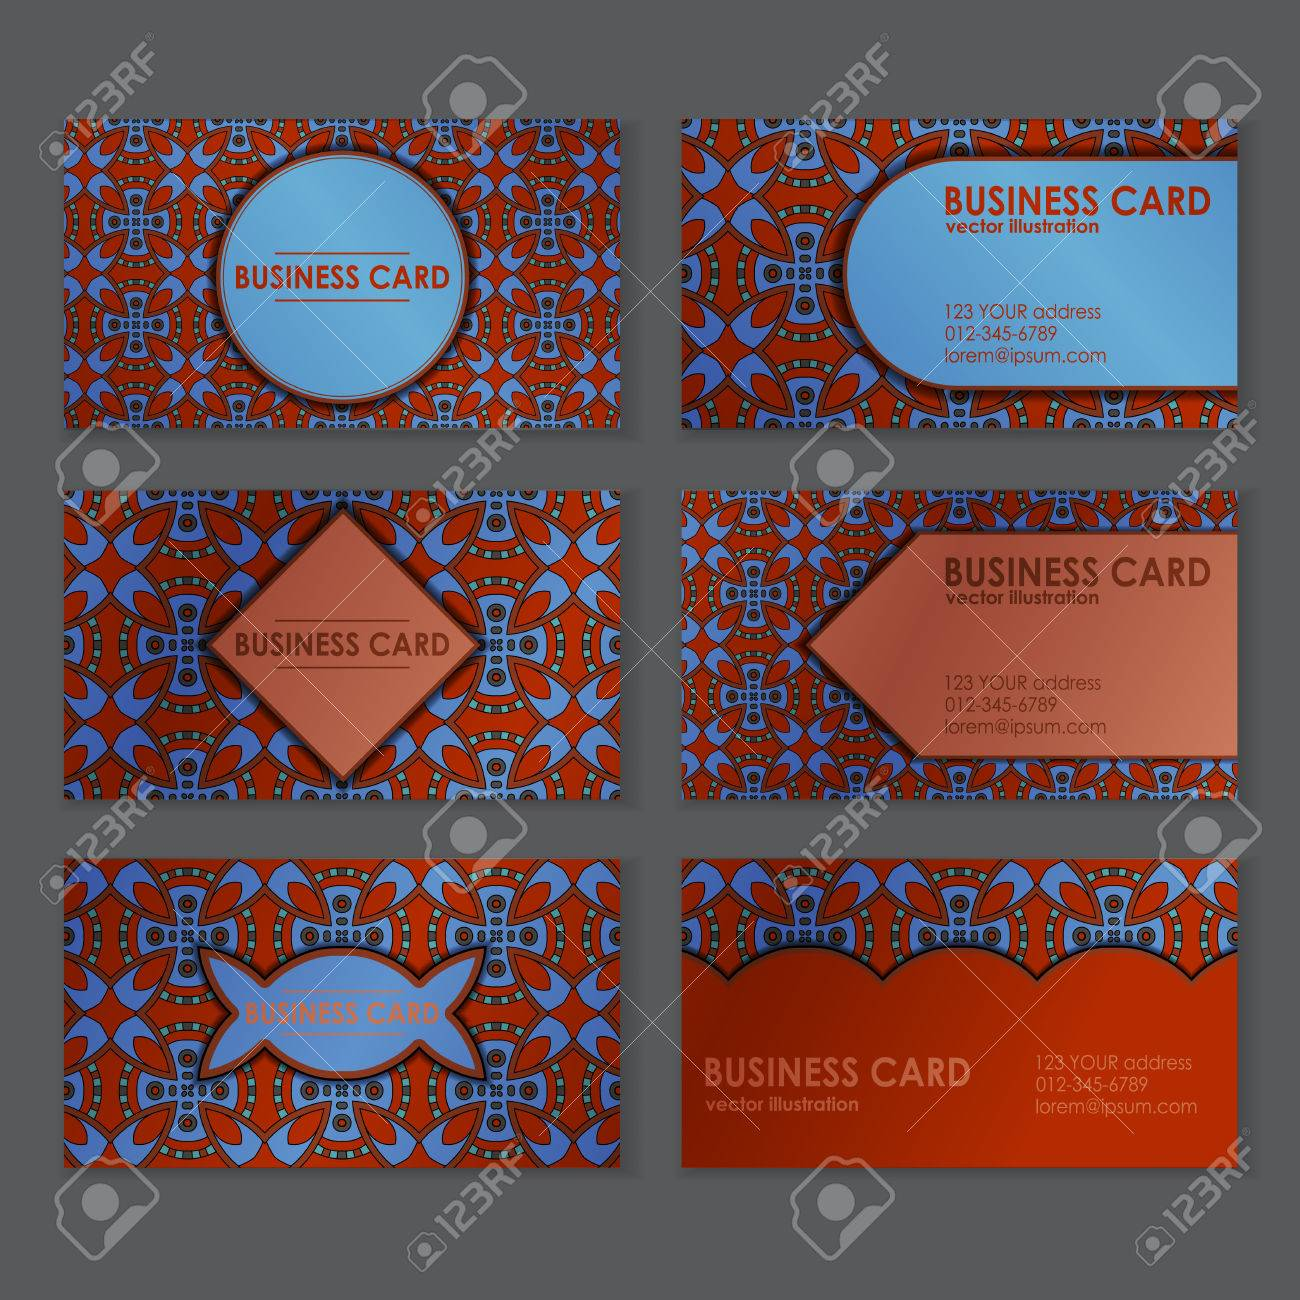 Business card templates with beautiful ethnic motif royalty free business card templates with beautiful ethnic motif stock vector 64174028 flashek Image collections